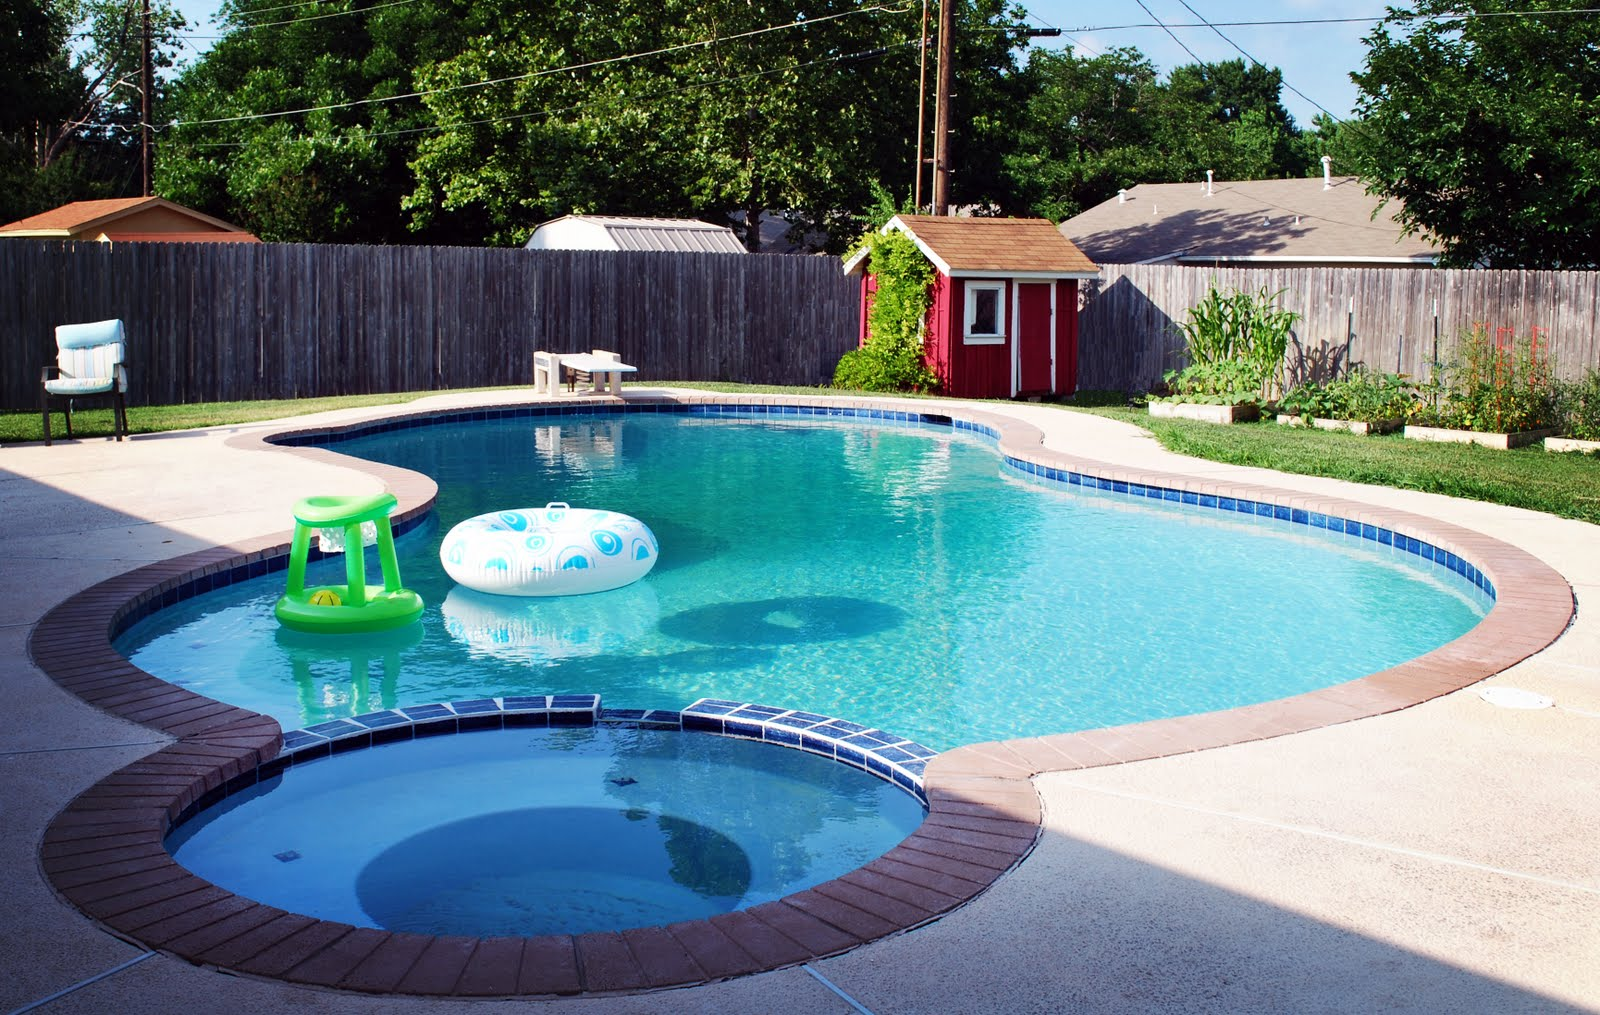 Astonishing small inground pools to complete your Pool design plans